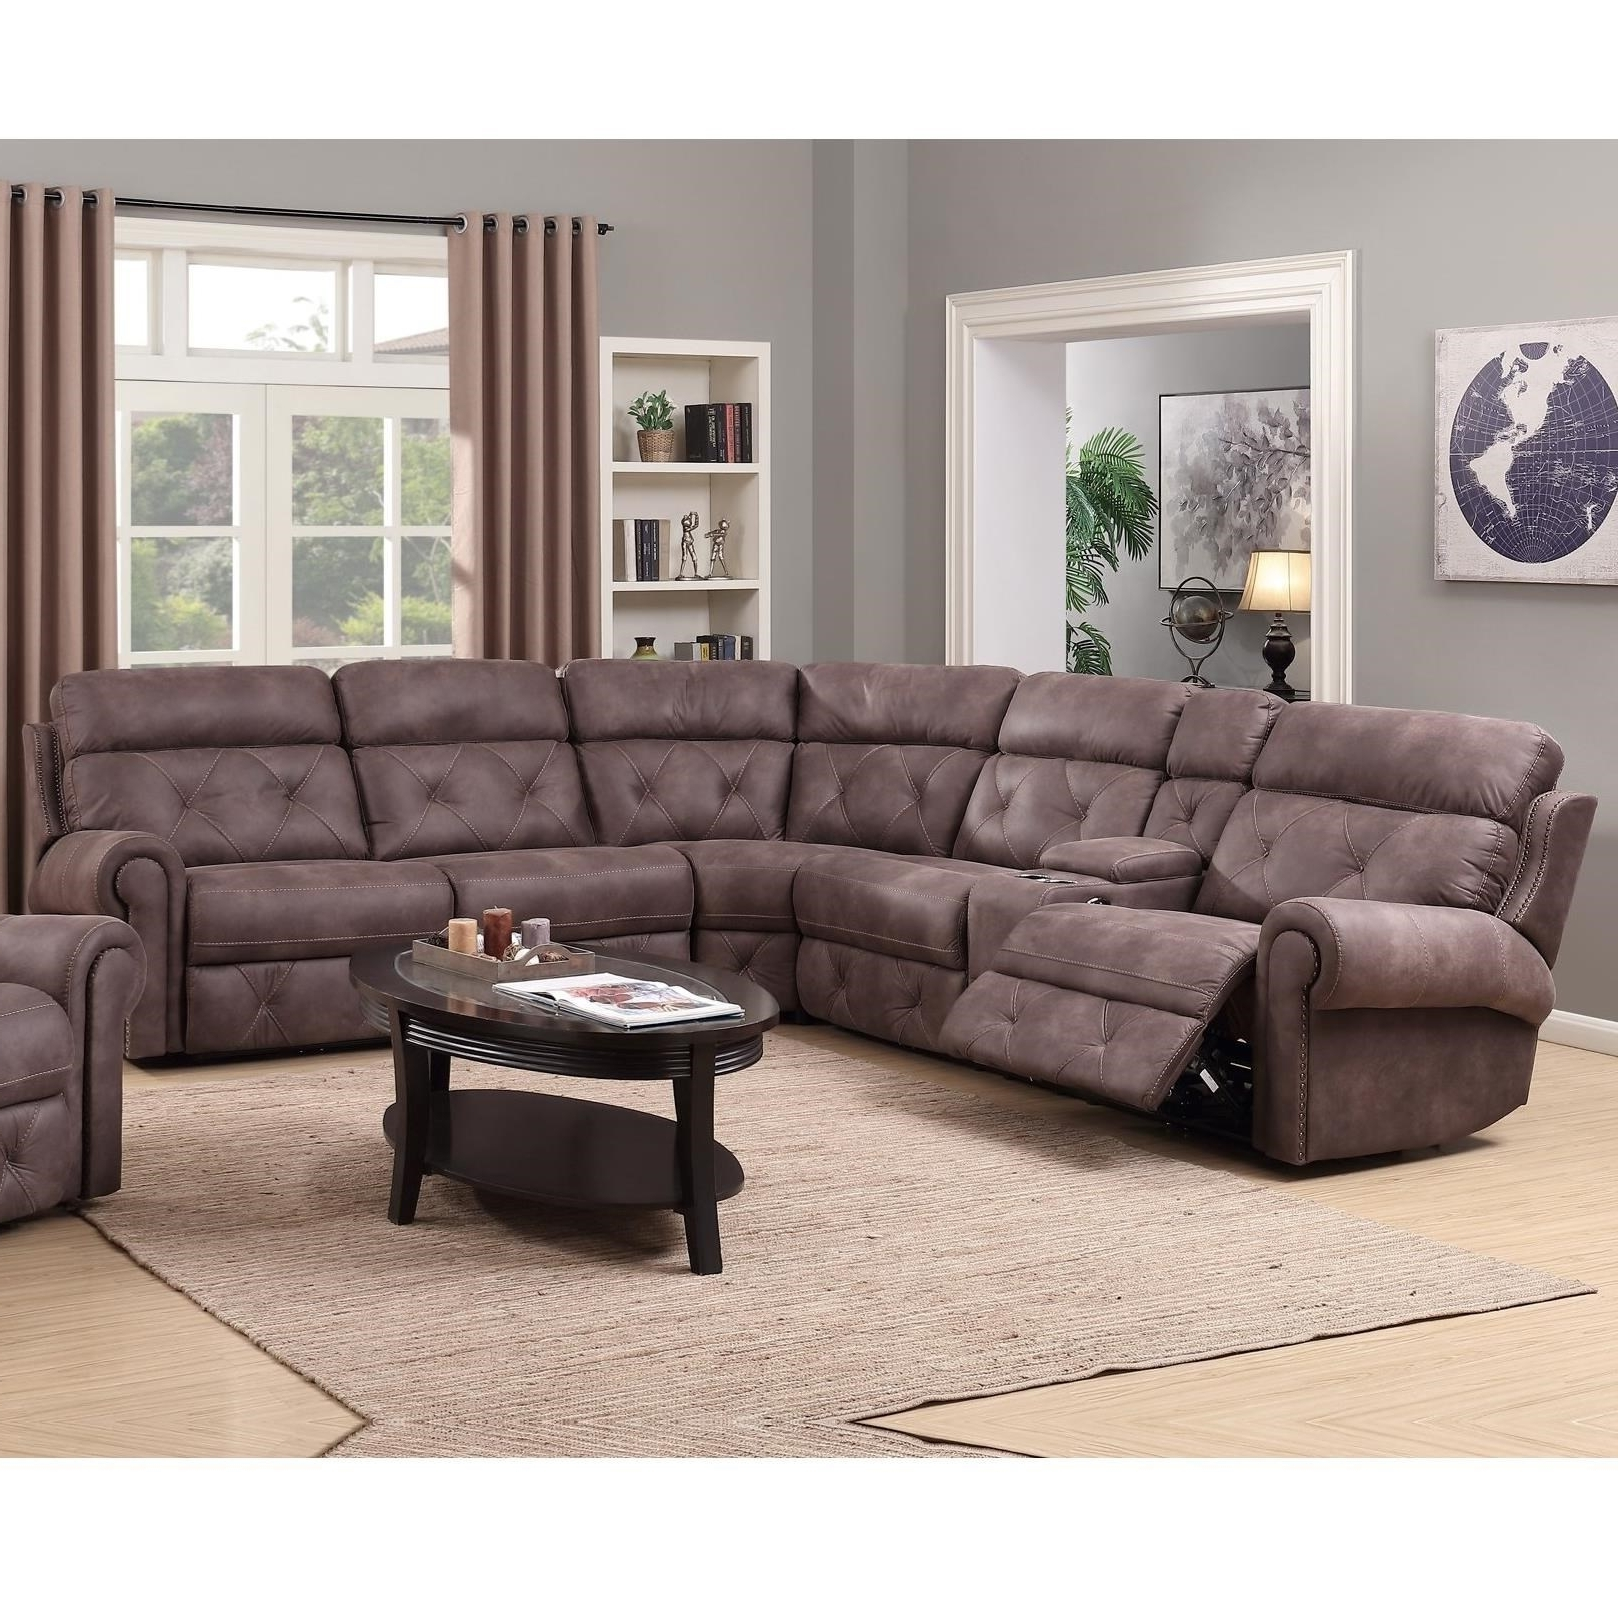 Happy Leather Company 1378 Power Reclining Sectional With Console For Widely Used Sectional Sofas At Birmingham Al (View 9 of 15)